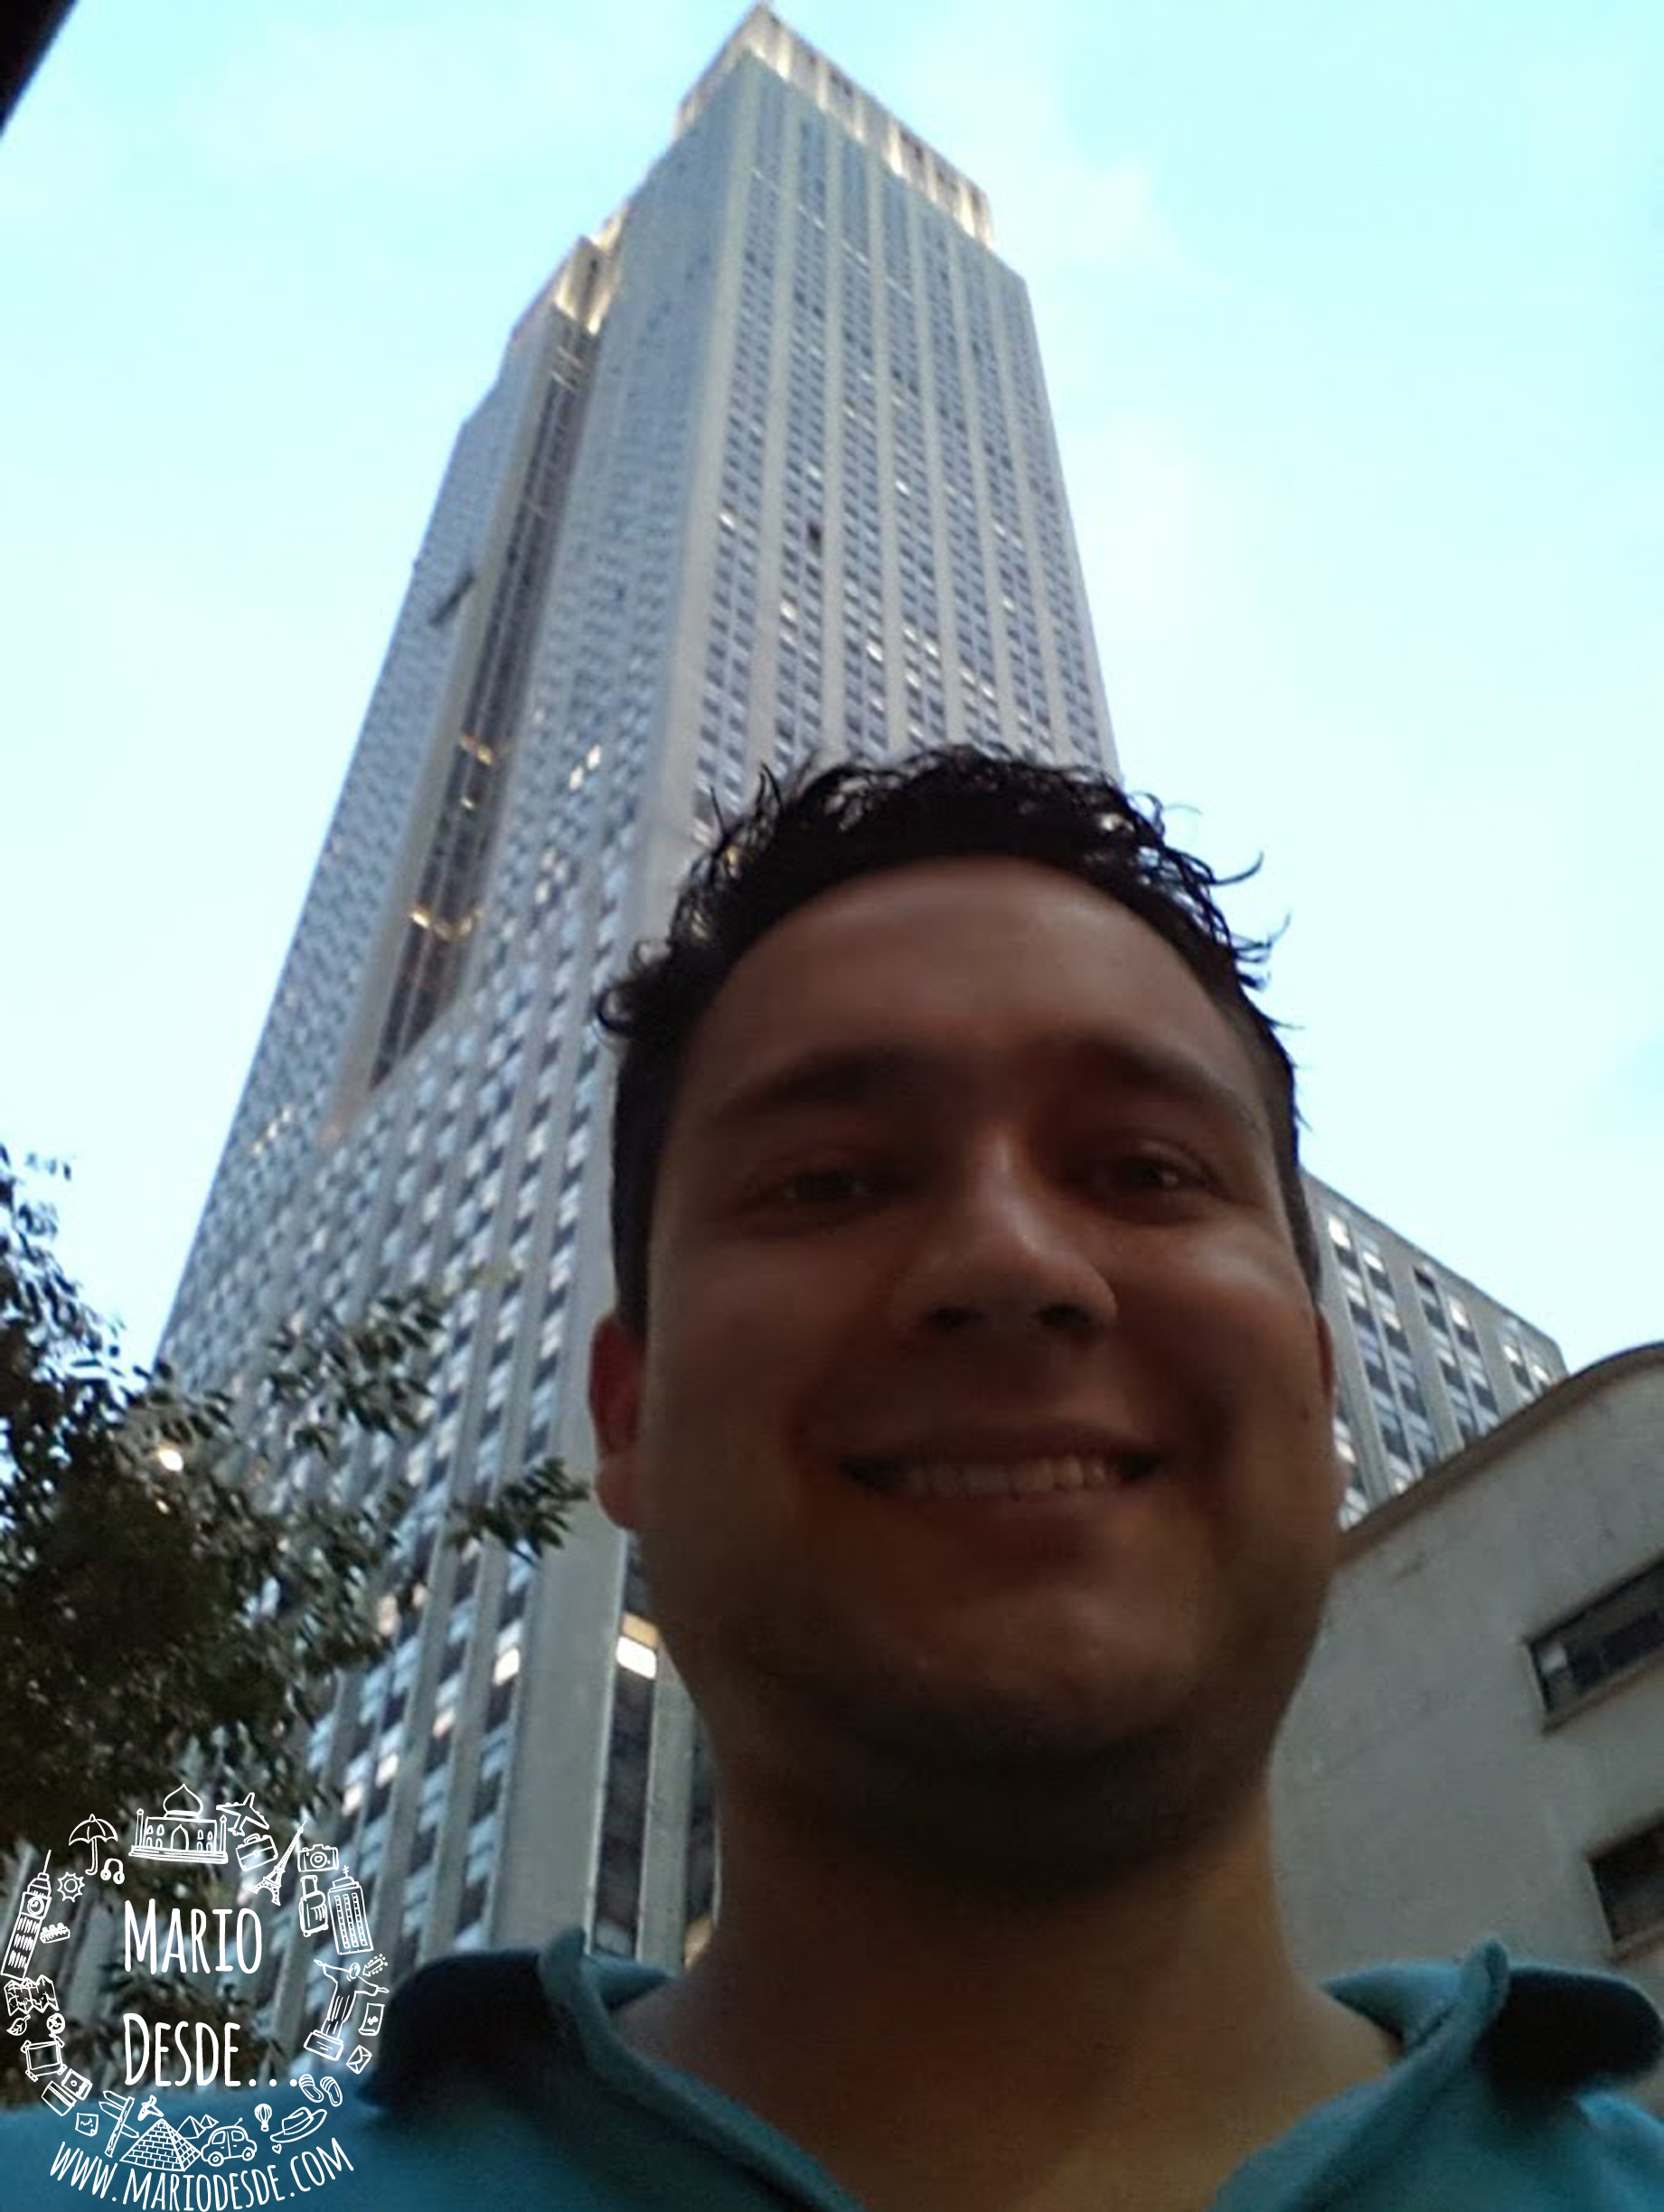 Empire State Building, Mario Desde...